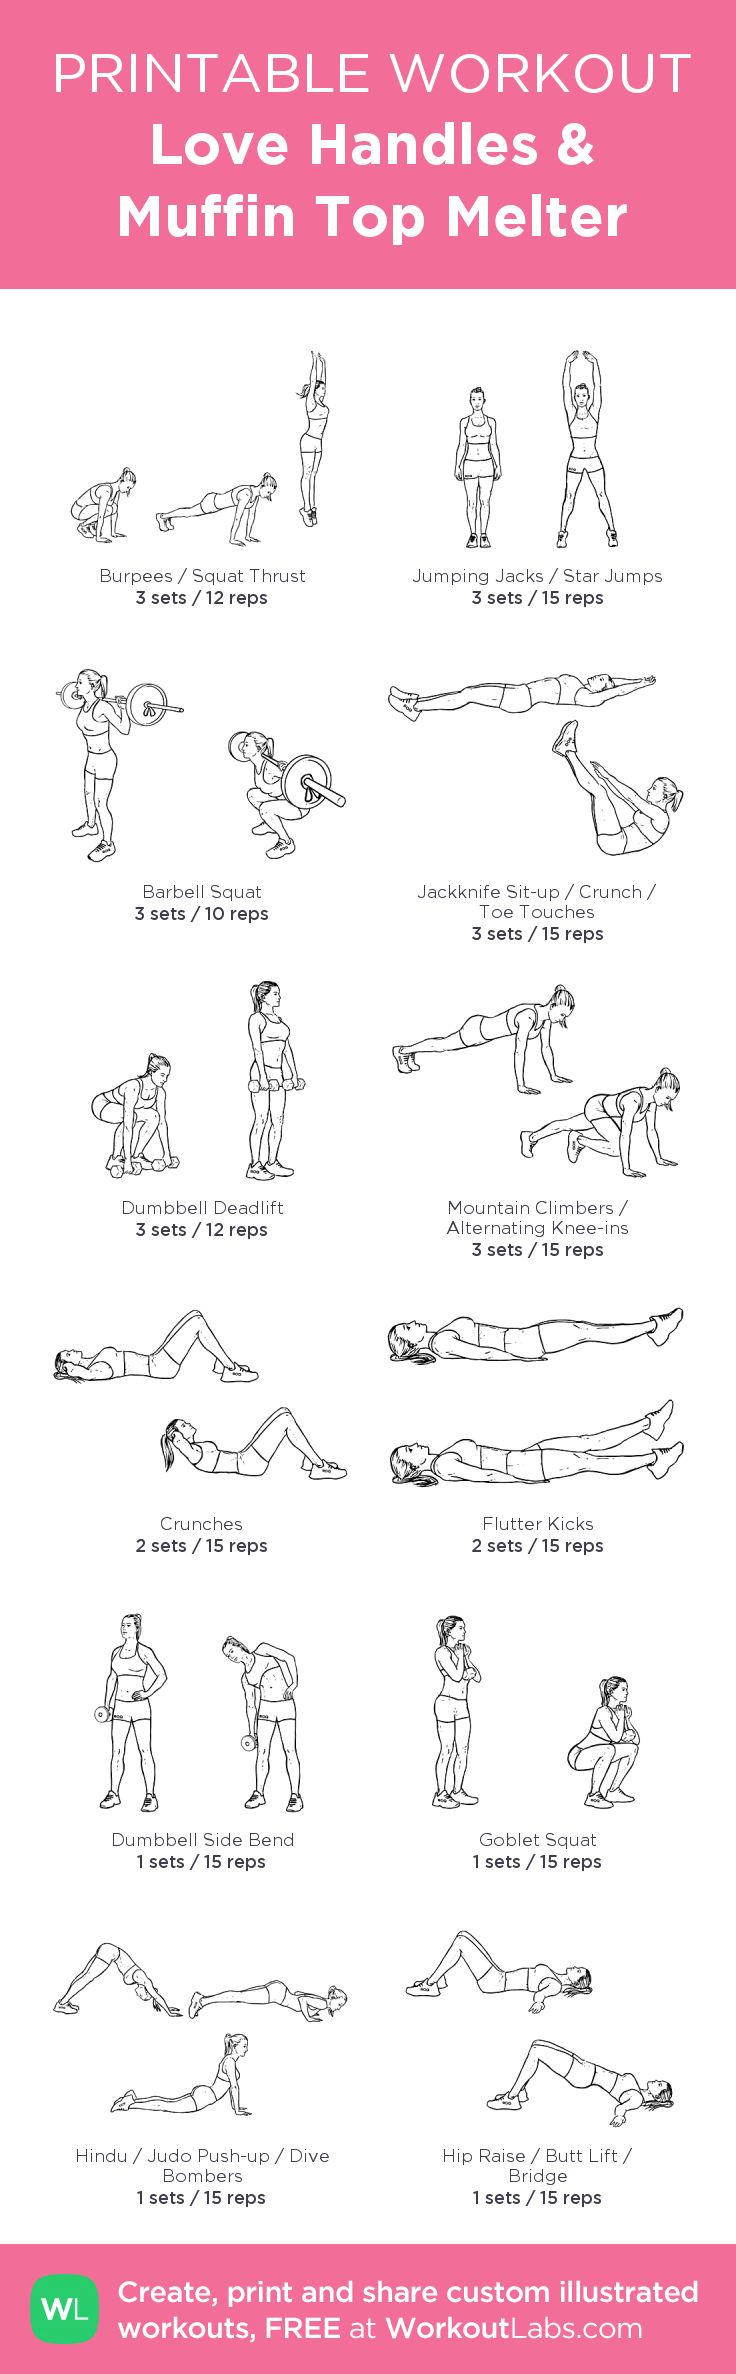 Love Handles & Muffin Top Melter: my visual workout created at WorkoutLabs.com • Click through to customize and download as a FREE PDF! #customworkout